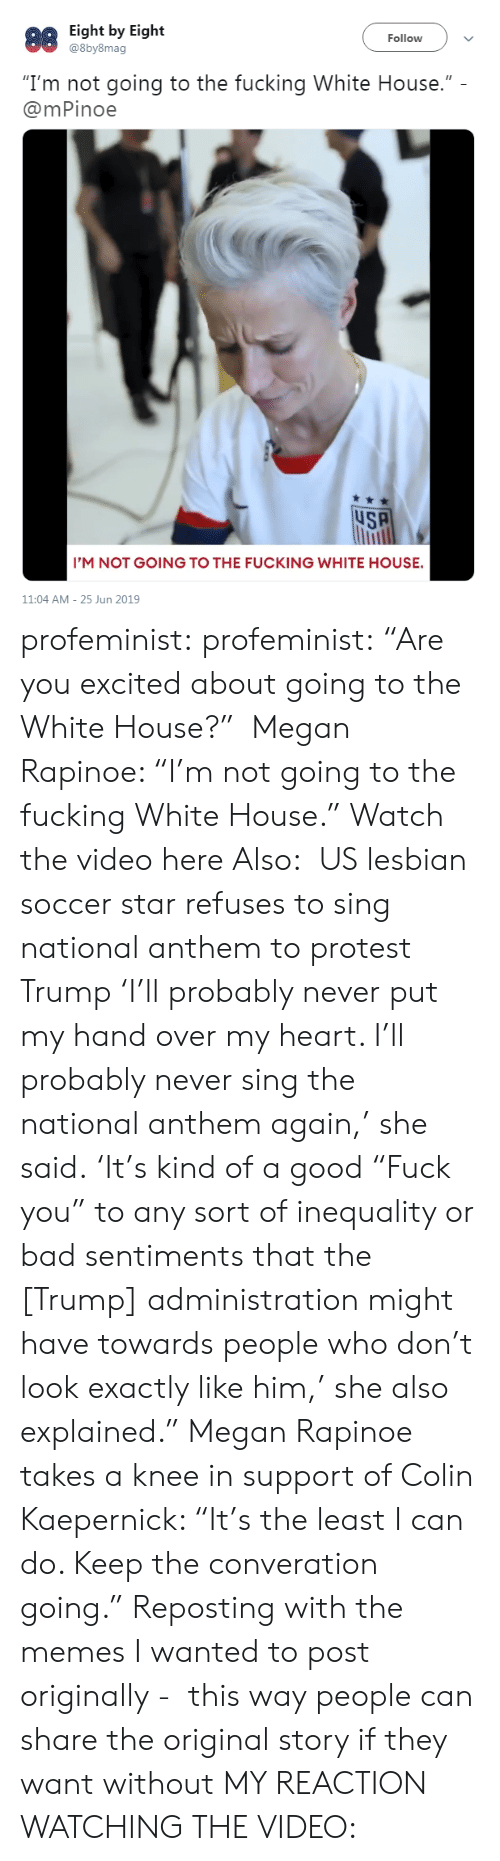 "White House: Eight by Eight  @8by8mag  88  Follow  ""I'm not going to the fucking White House.""  @mPinoe  uSA  I'M NOT GOING TO THE FUCKING WHITE HOUSE.  11:04 AM 25 Jun 2019 profeminist: profeminist:  ""Are you excited about going to the White House?""  Megan Rapinoe: ""I'm not going to the fucking White House."" Watch the video here  Also:  US lesbian soccer star refuses to sing national anthem to protest Trump 'I'll probably never put my hand over my heart. I'll probably never sing the national anthem again,' she said. 'It's kind of a good ""Fuck you"" to any sort of inequality or bad sentiments that the [Trump] administration might have towards people who don't look exactly like him,' she also explained."" Megan Rapinoe takes a knee in support of Colin Kaepernick: ""It's the least I can do. Keep the converation going.""  Reposting with the memes I wanted to post originally -  this way people can share the original story if they want without MY REACTION WATCHING THE VIDEO:"